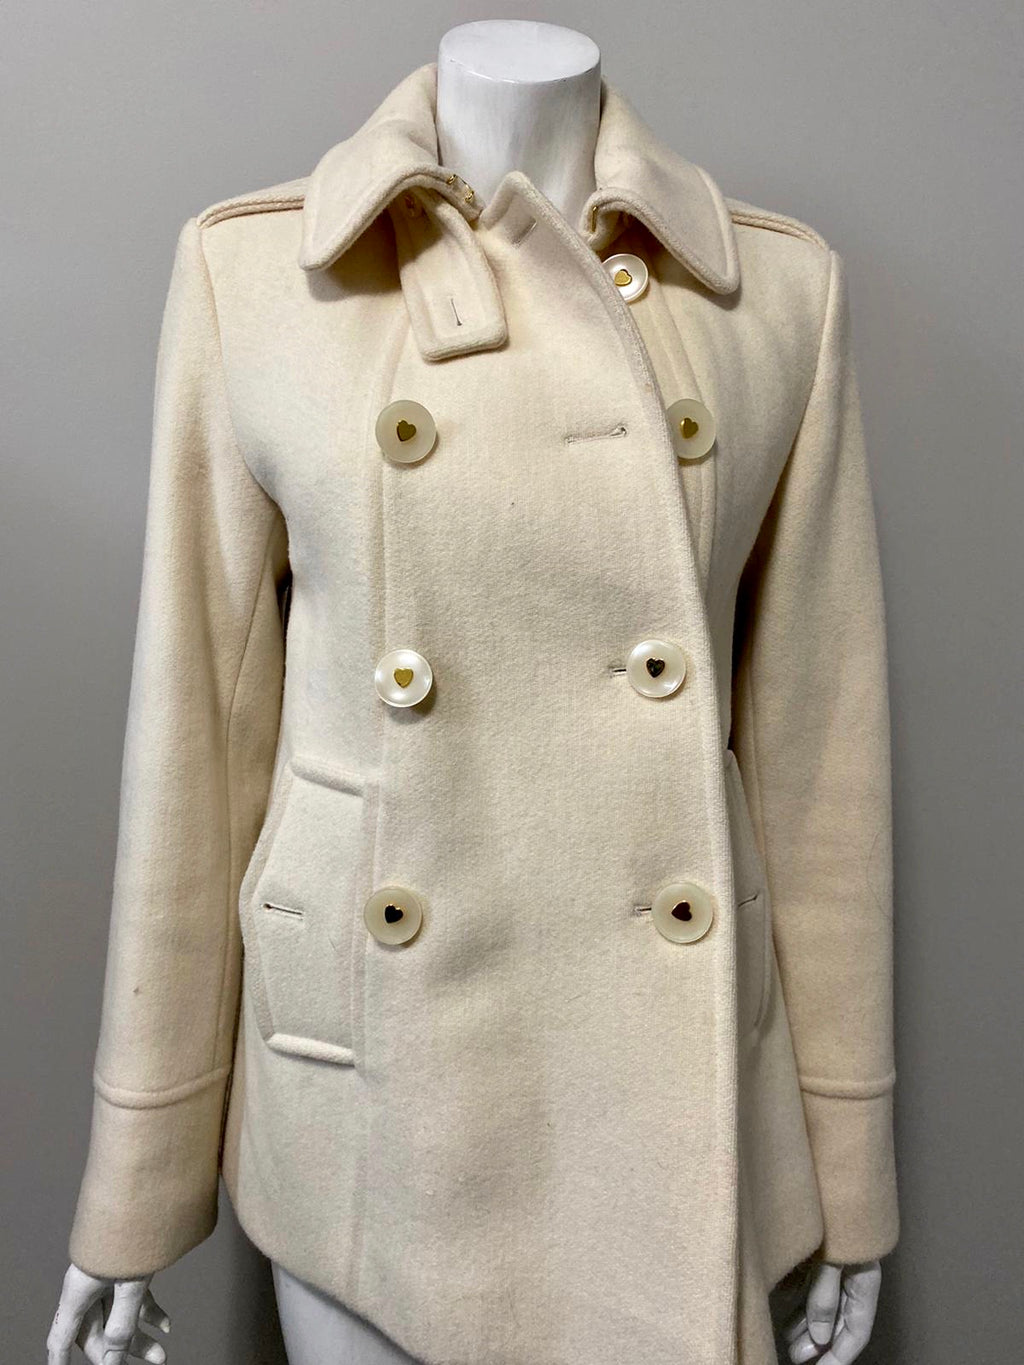 Betsey Johnson Cream Wool Coat Size 6